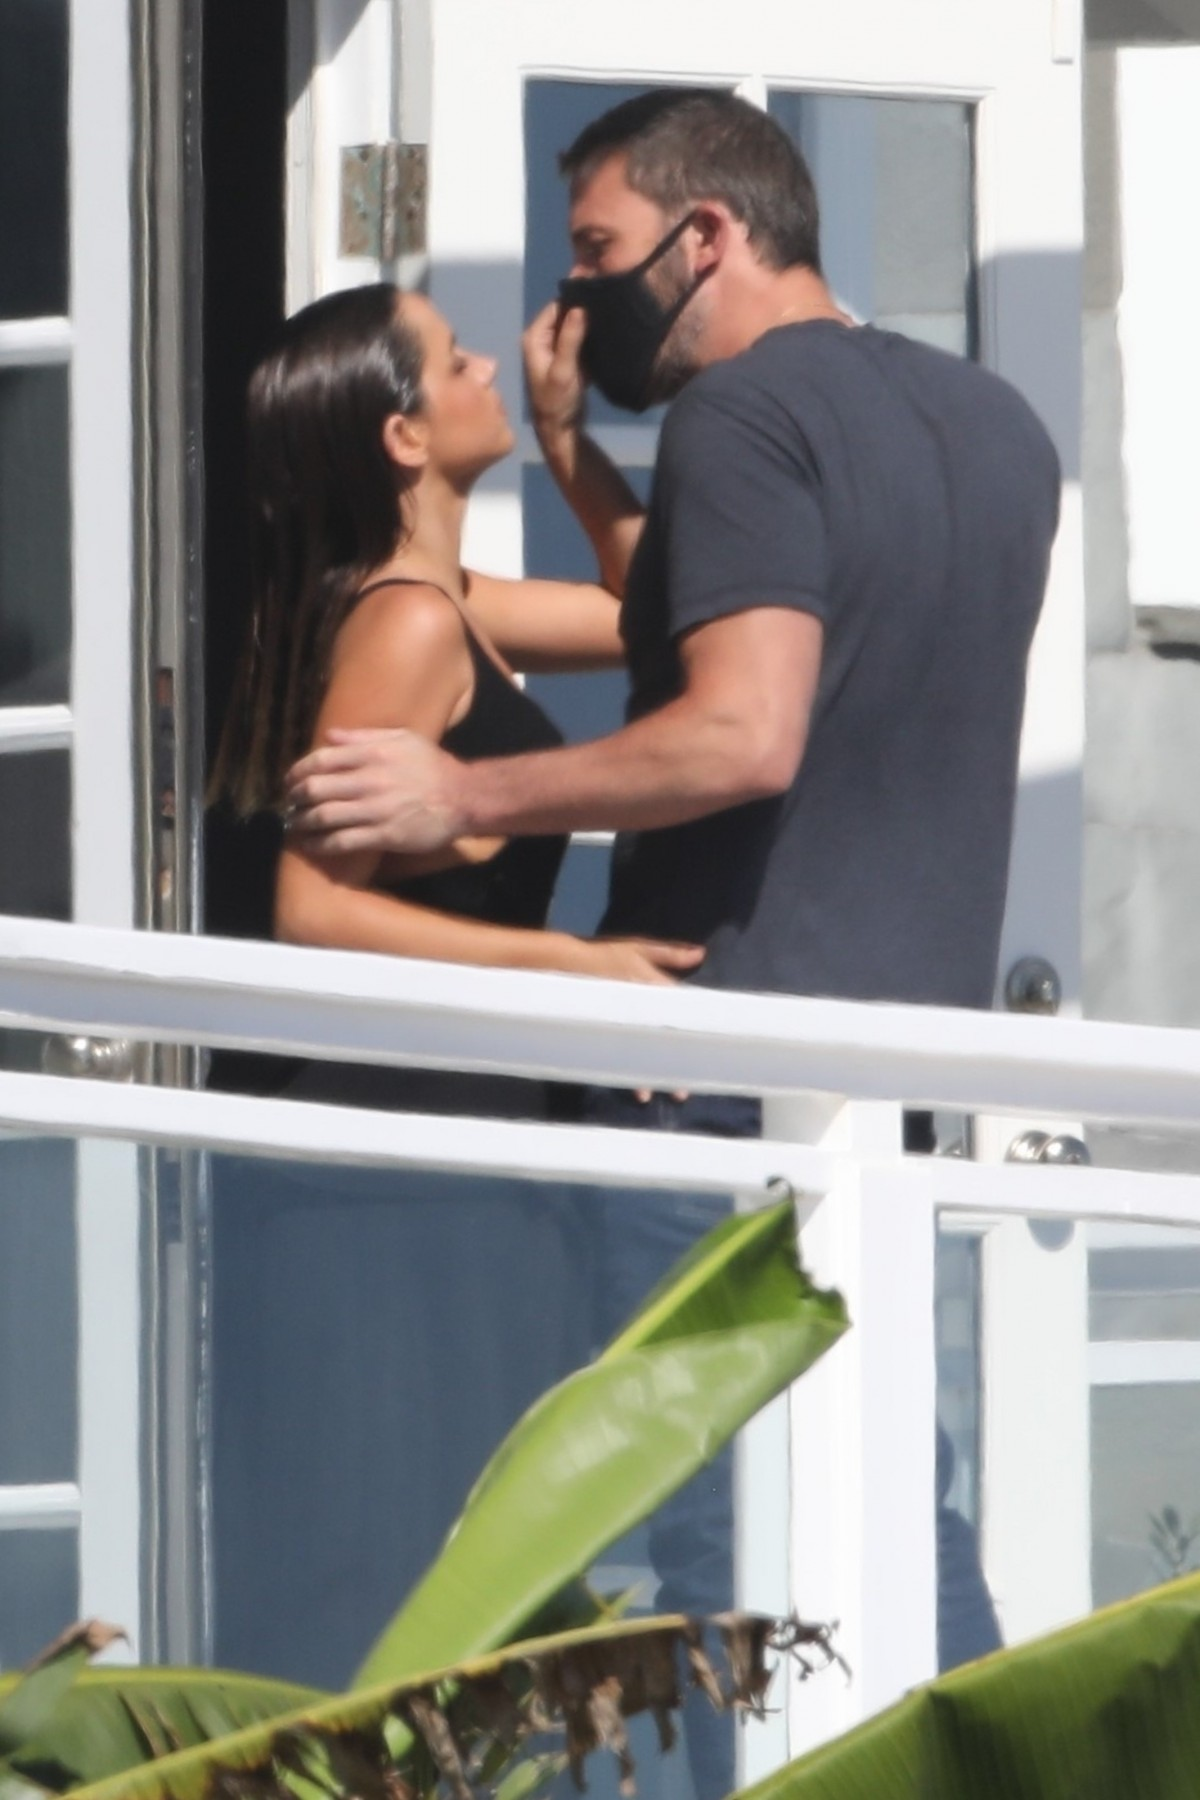 Ben Affleck's girlfriend Ana de Armas pulls down his mask for a kiss at a beach photoshoot